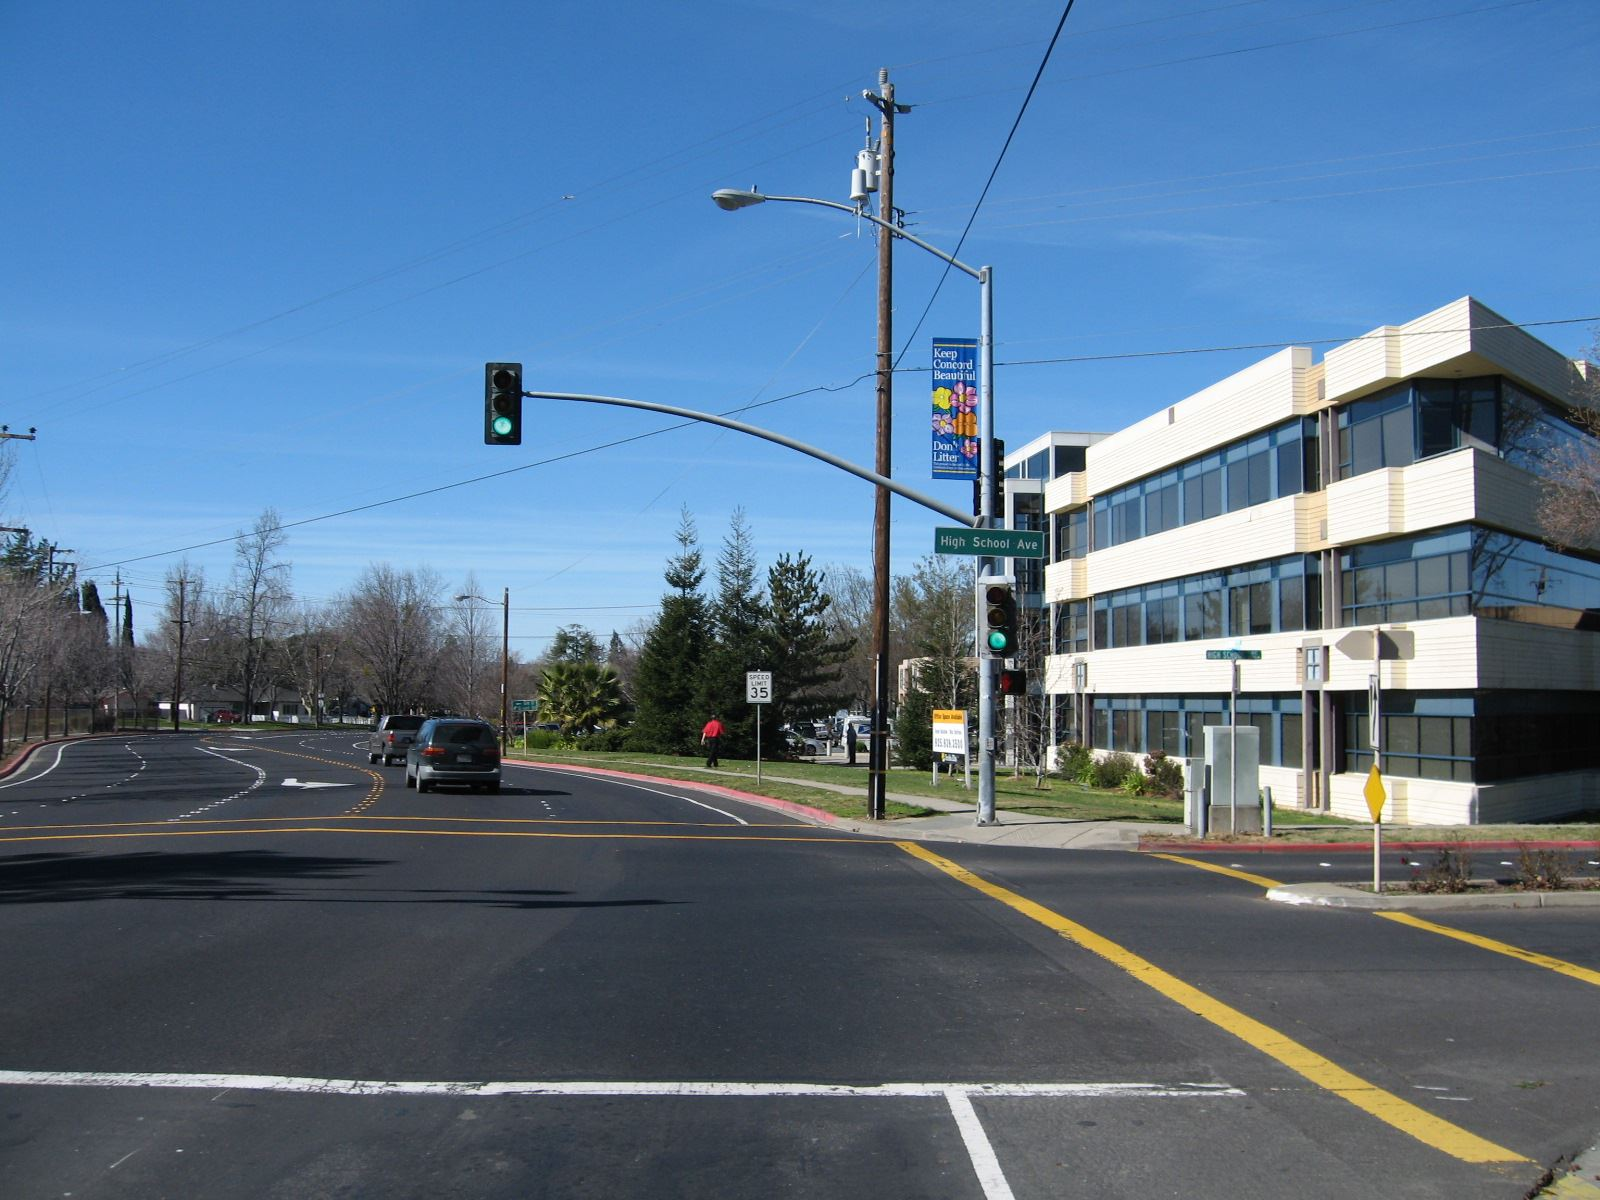 High School Ave-Concord_California